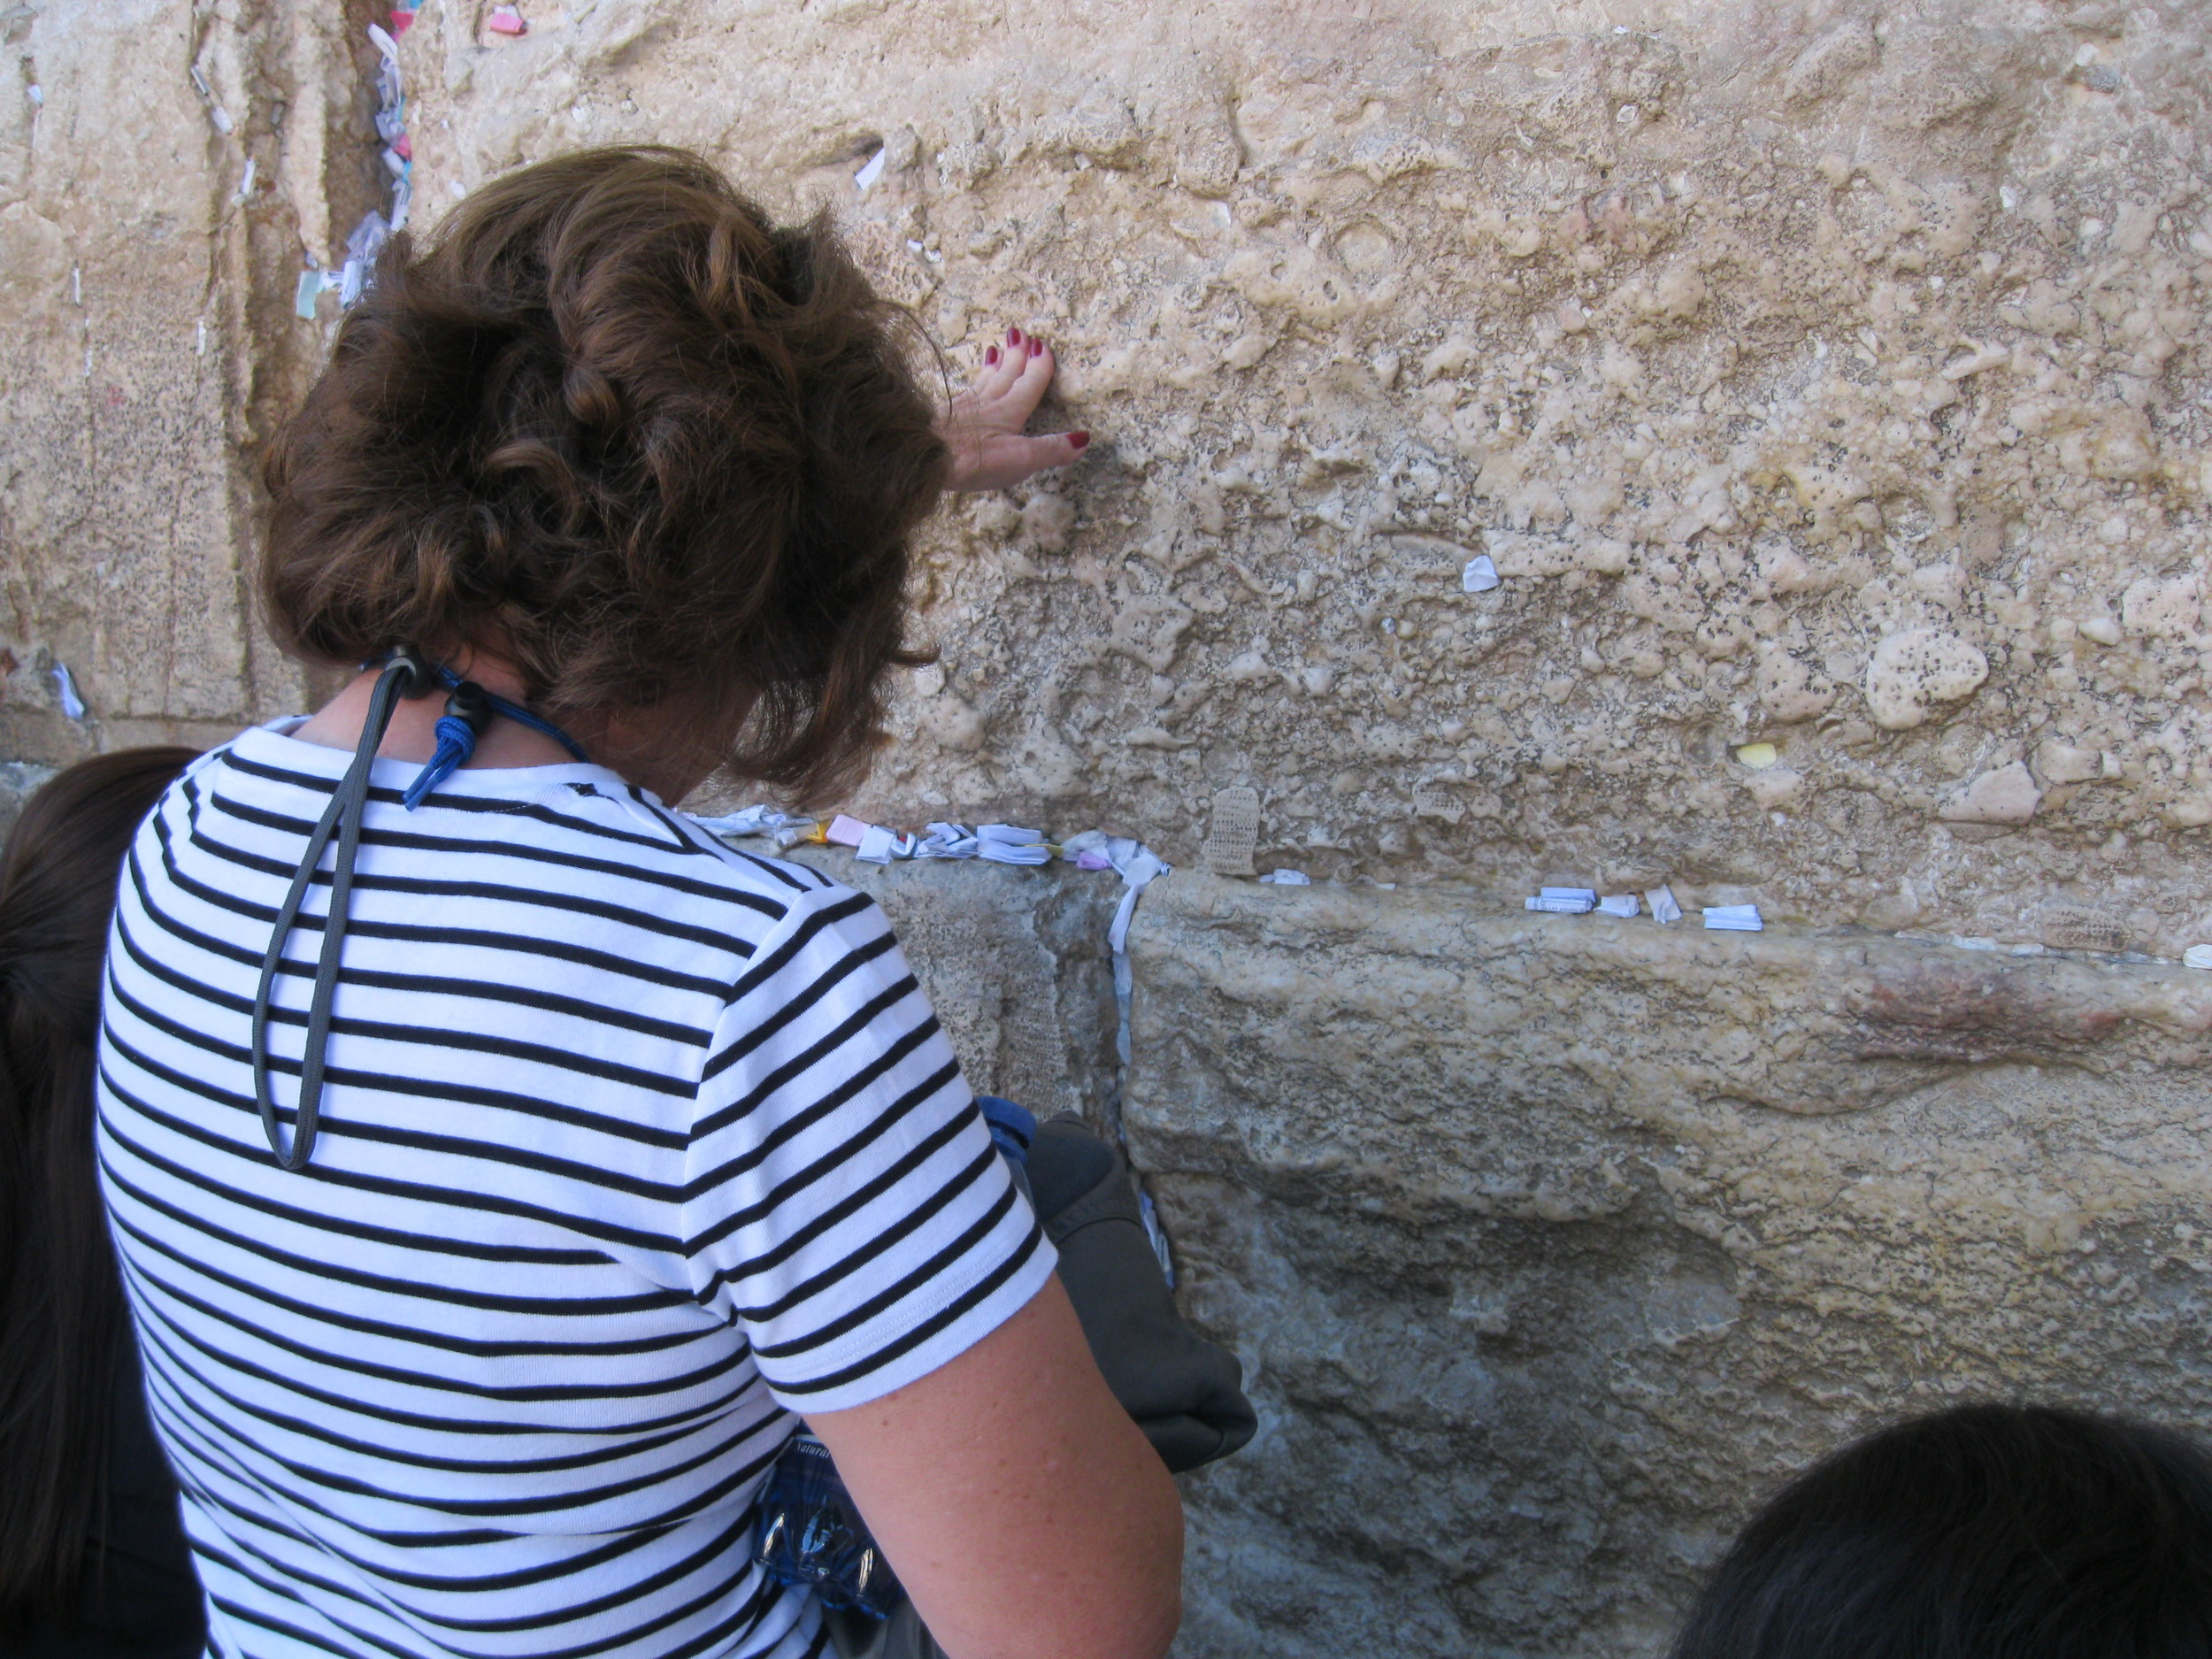 Israel Tour 2013 (Praying at the Wall)